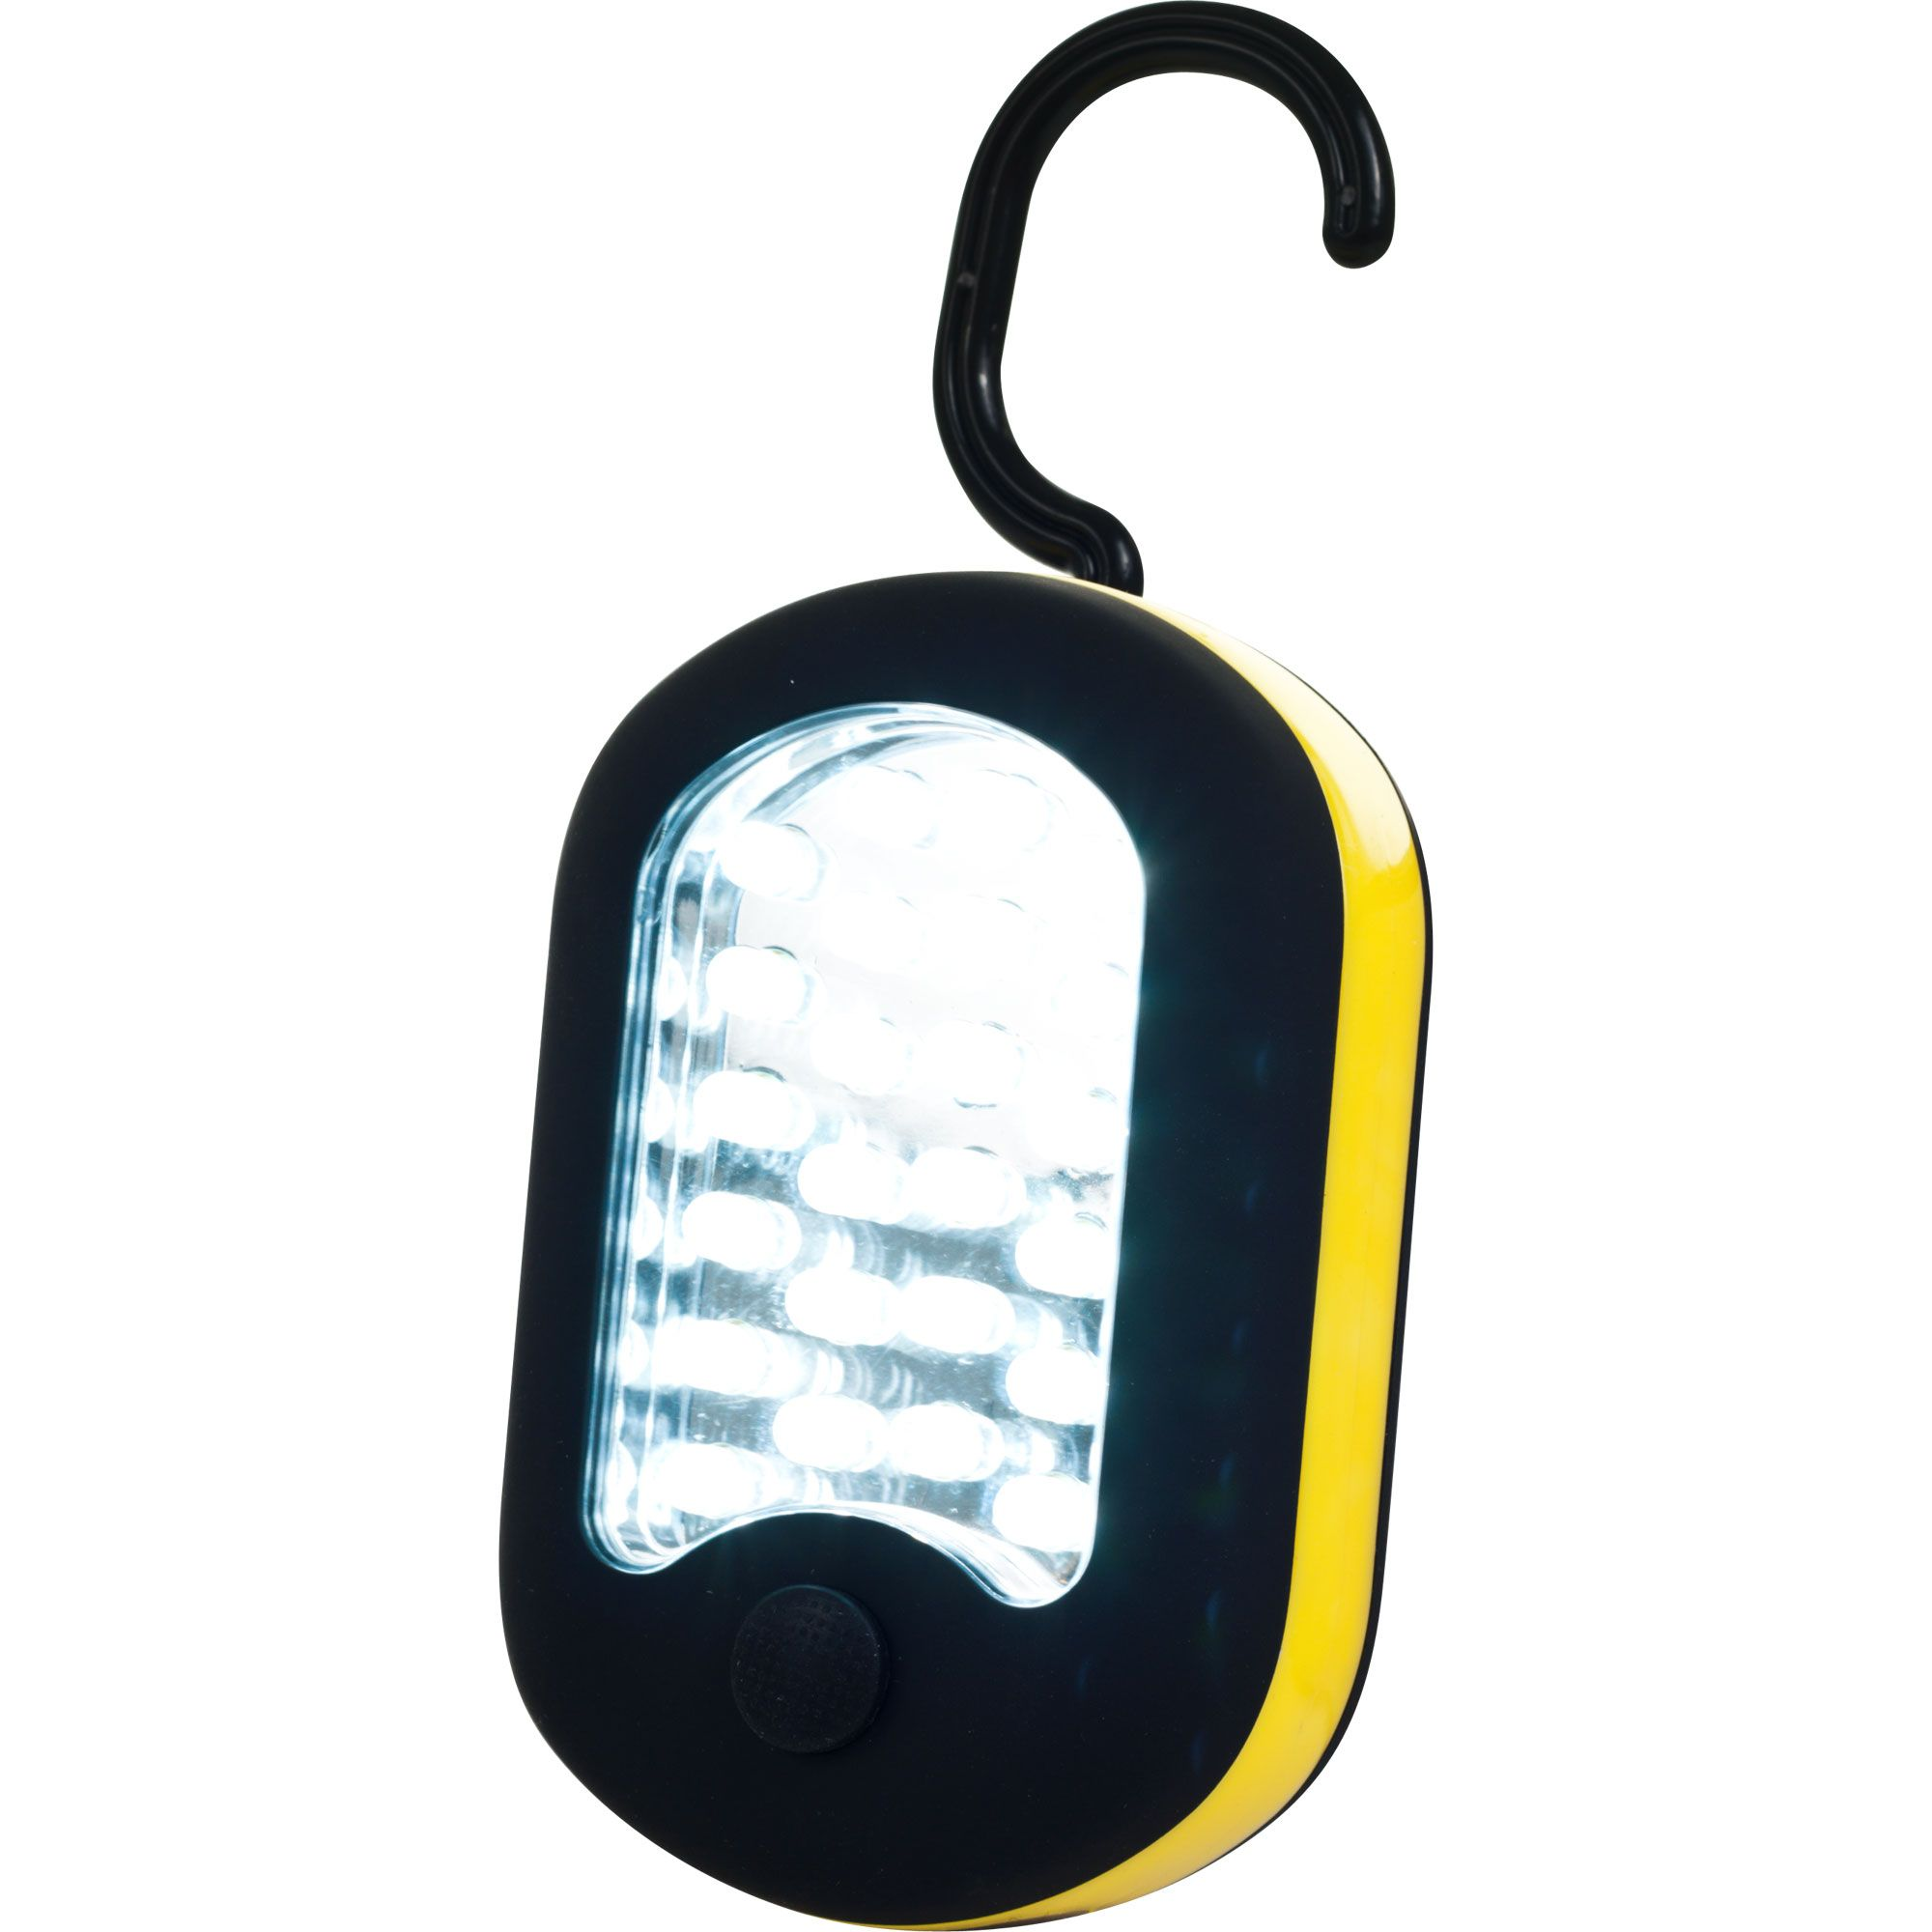 Portable Lights Upc 044902055560 Battery Operated Portable Hanging Work